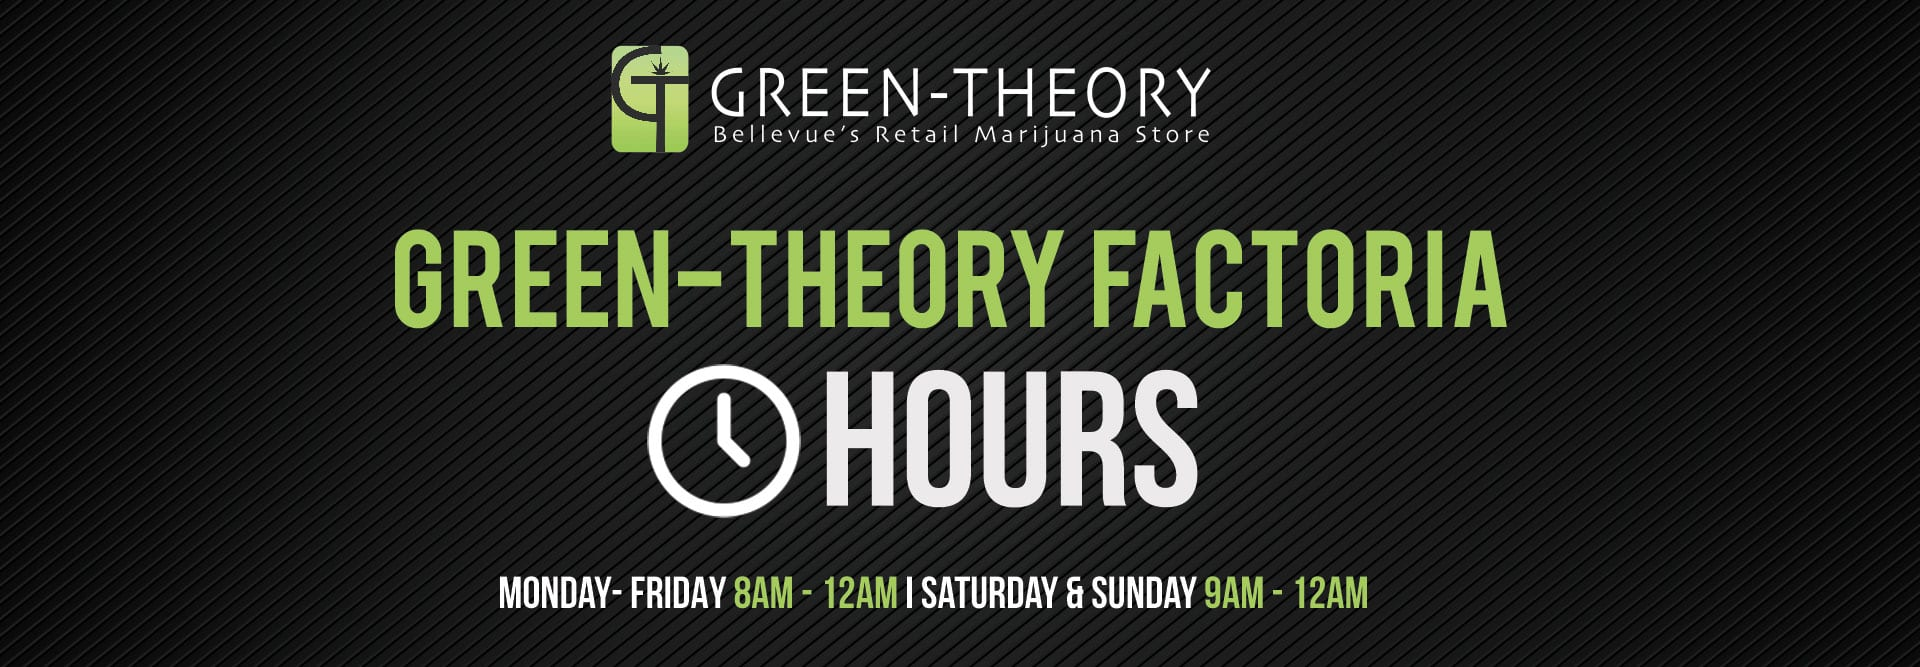 green-theory-factoria-hours